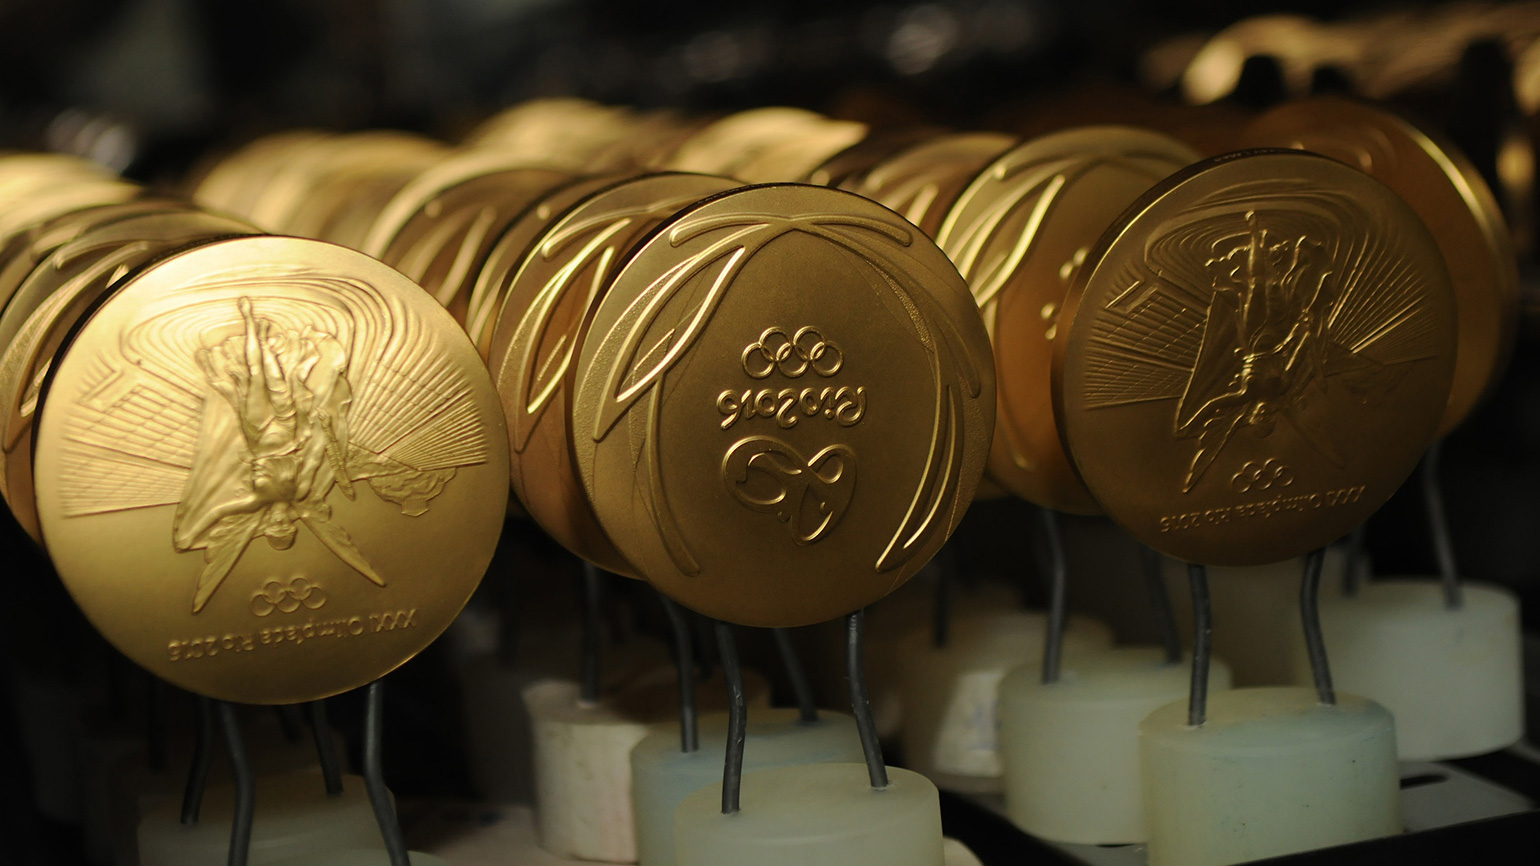 olympics-medal-makes-wallpaper-1-FT-BLOG0816.jpg